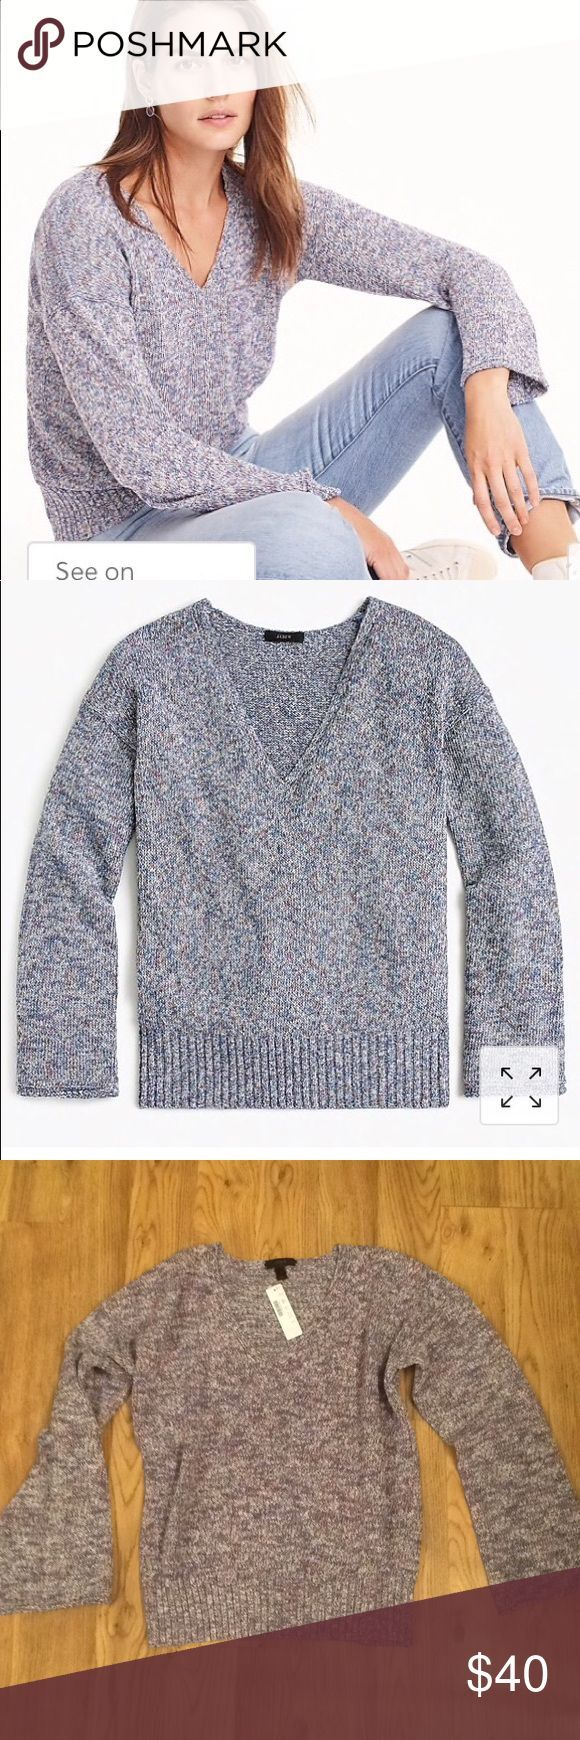 NWT J.Crew Marled Swing Sweater The throw on and g